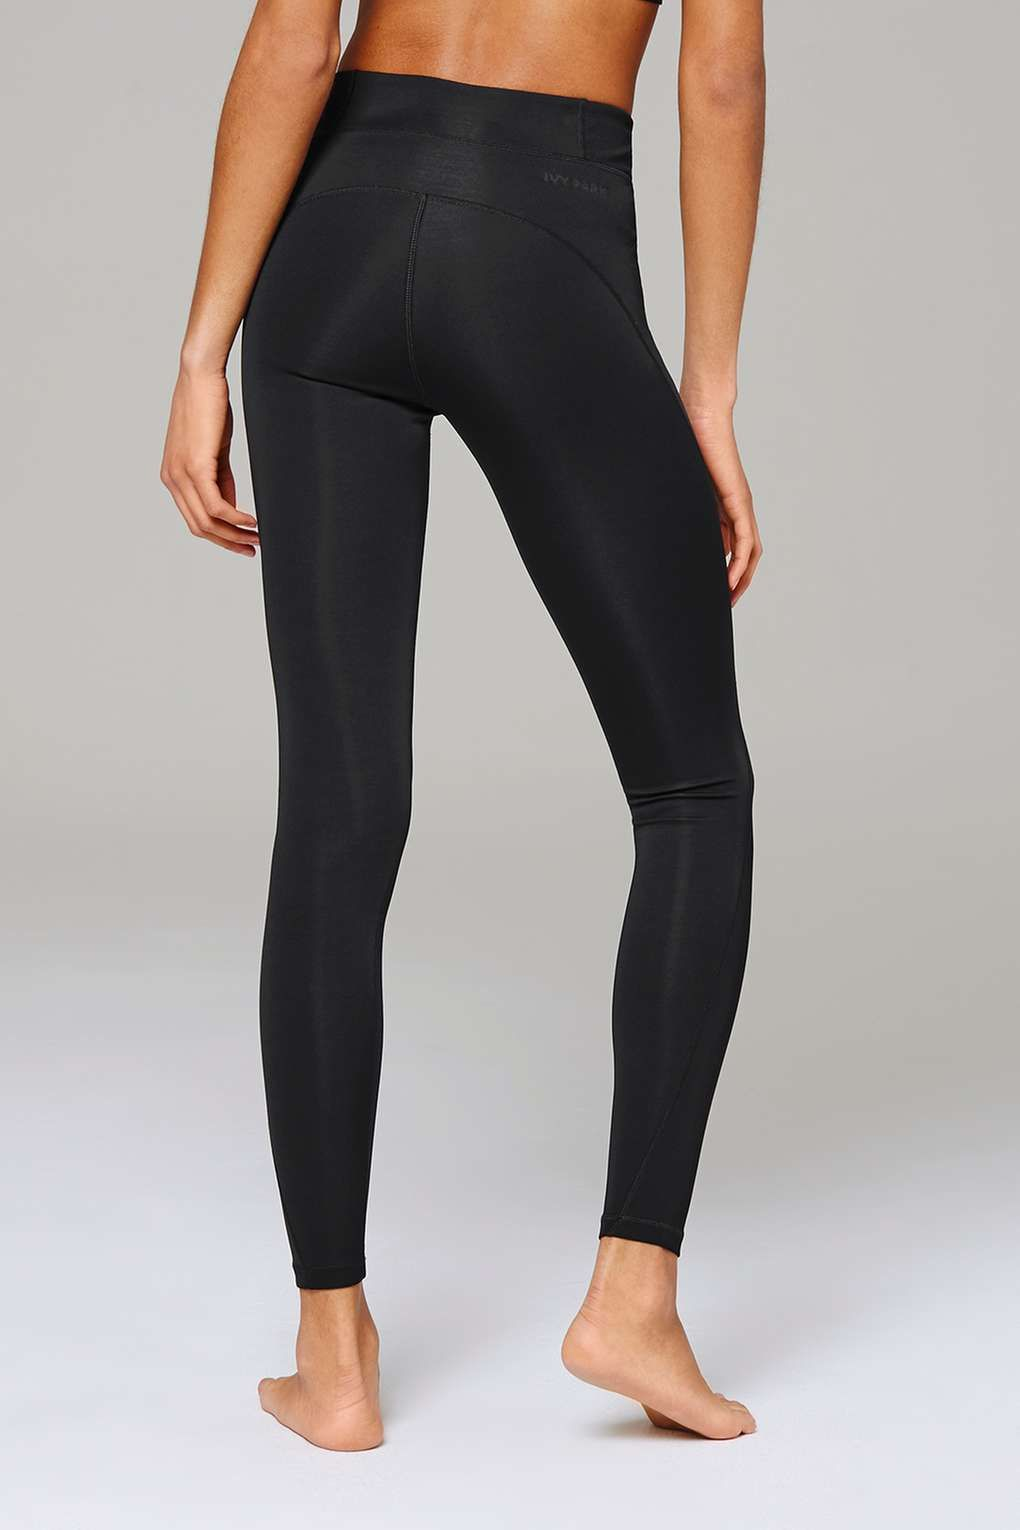 90a6e9506119f4 Carousel Image 4 Ivy Park Clothing, Fashion Trends, Womens Fashion, Yoga  Pants,